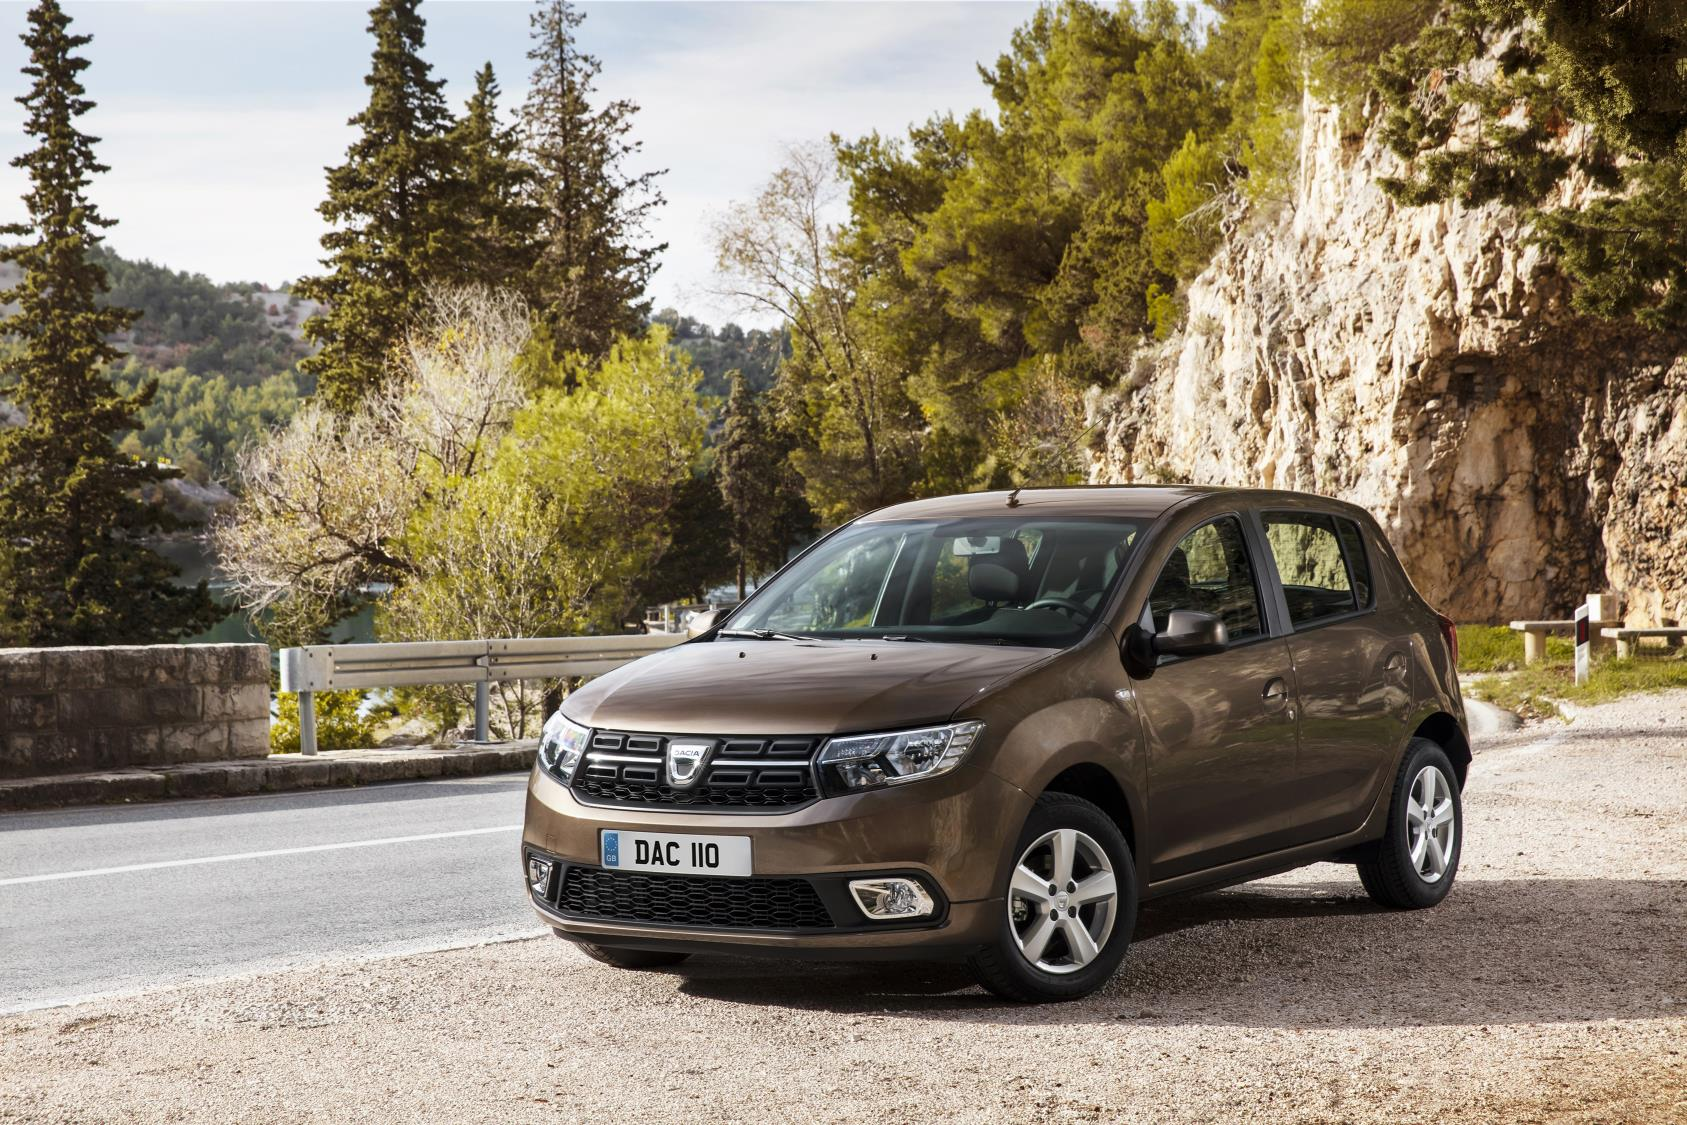 new dacia sandero and new logan mcv updates. Black Bedroom Furniture Sets. Home Design Ideas